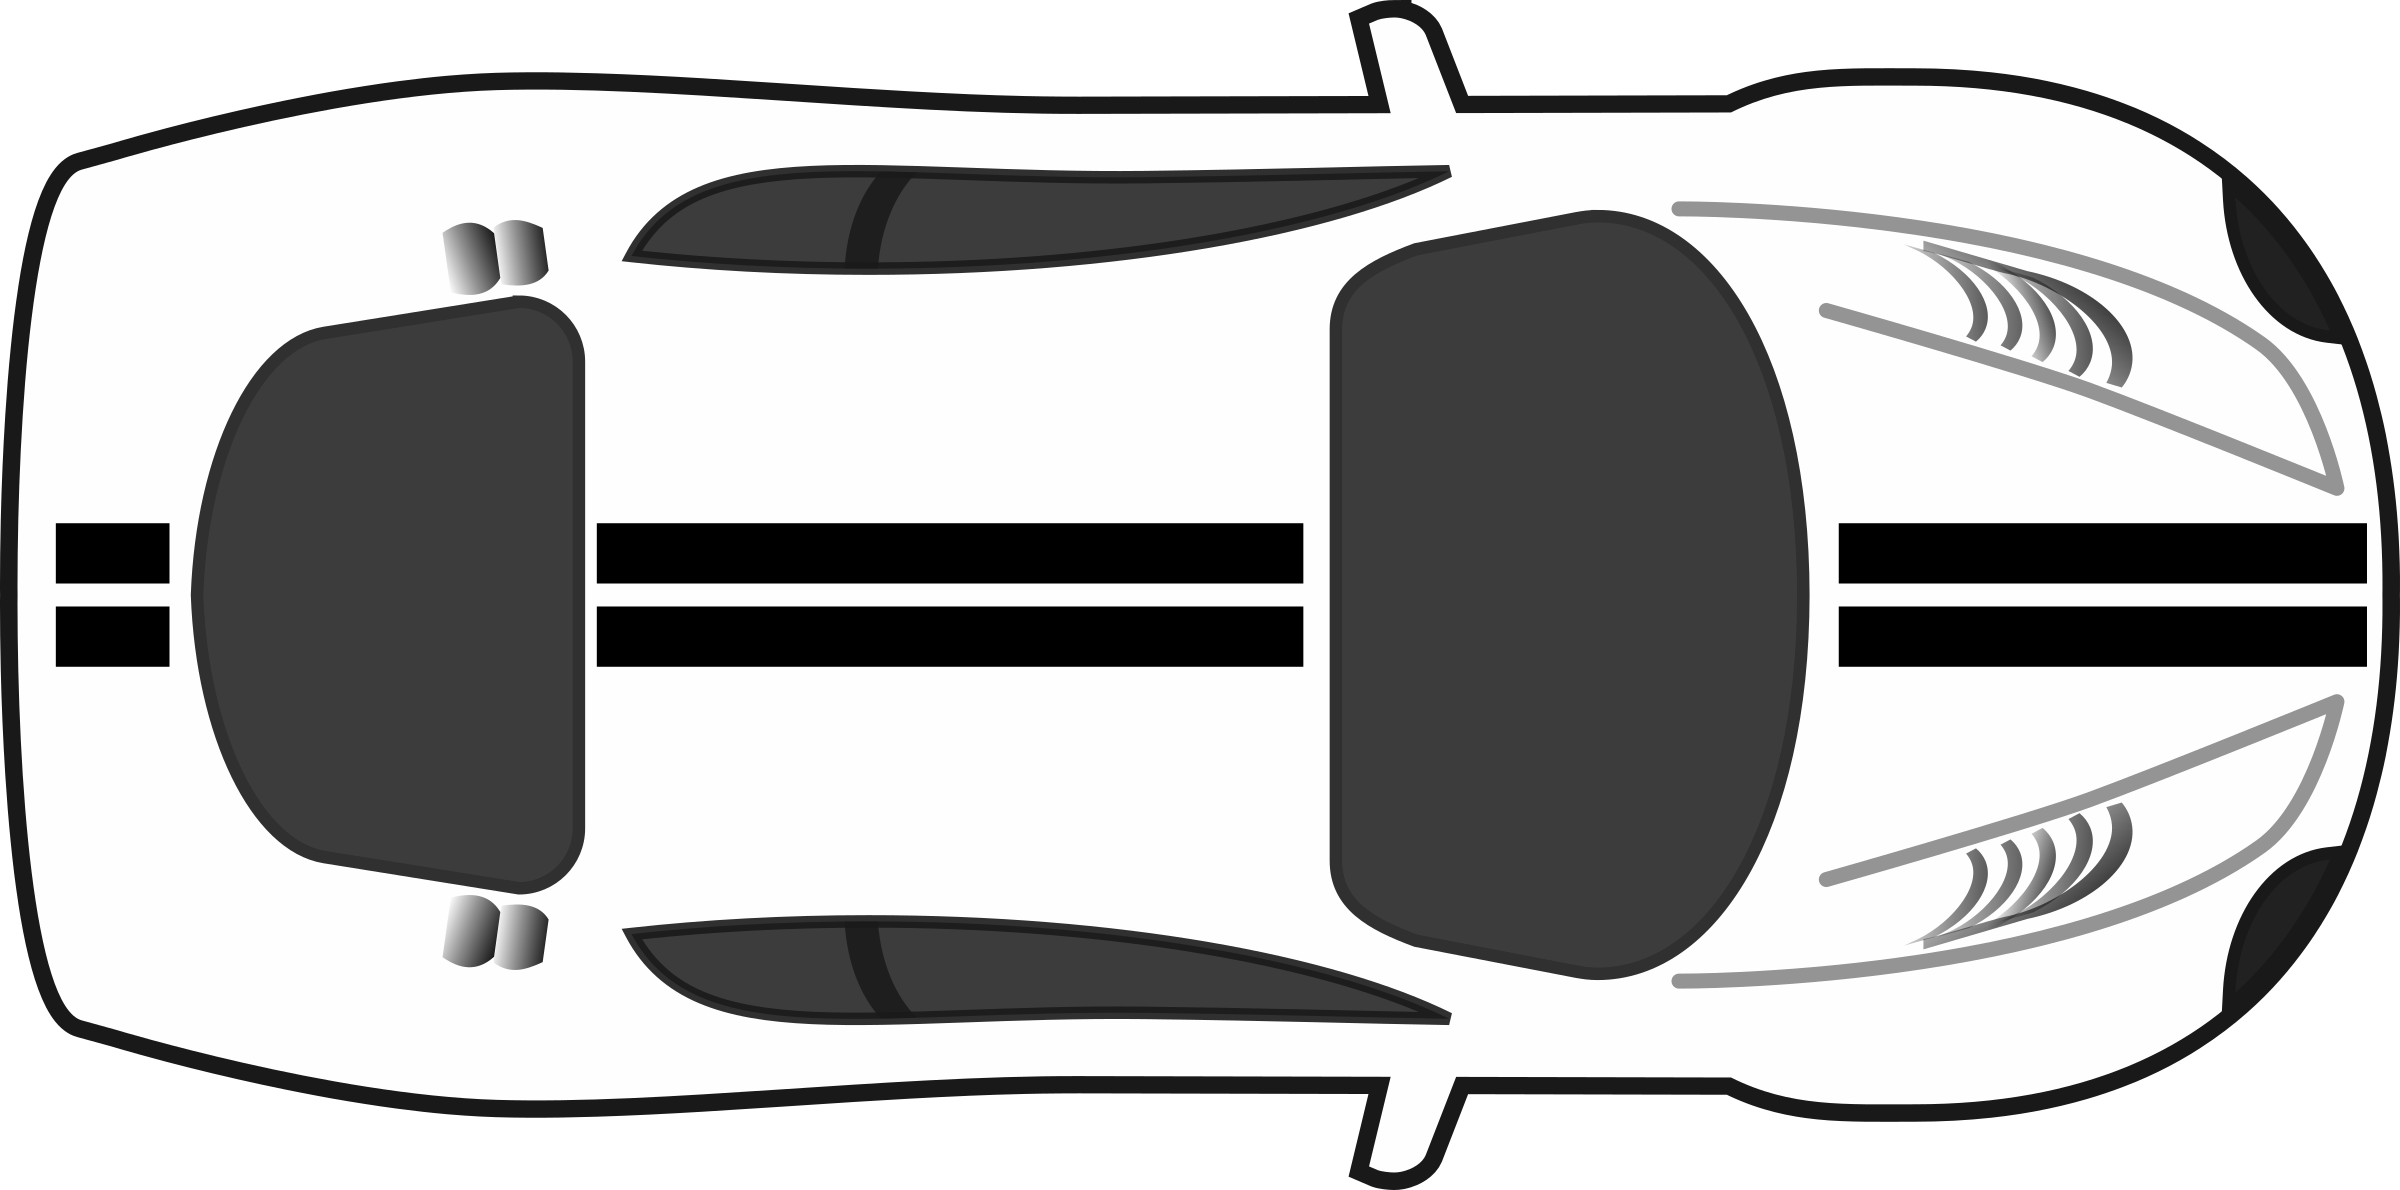 r34 drawing side view